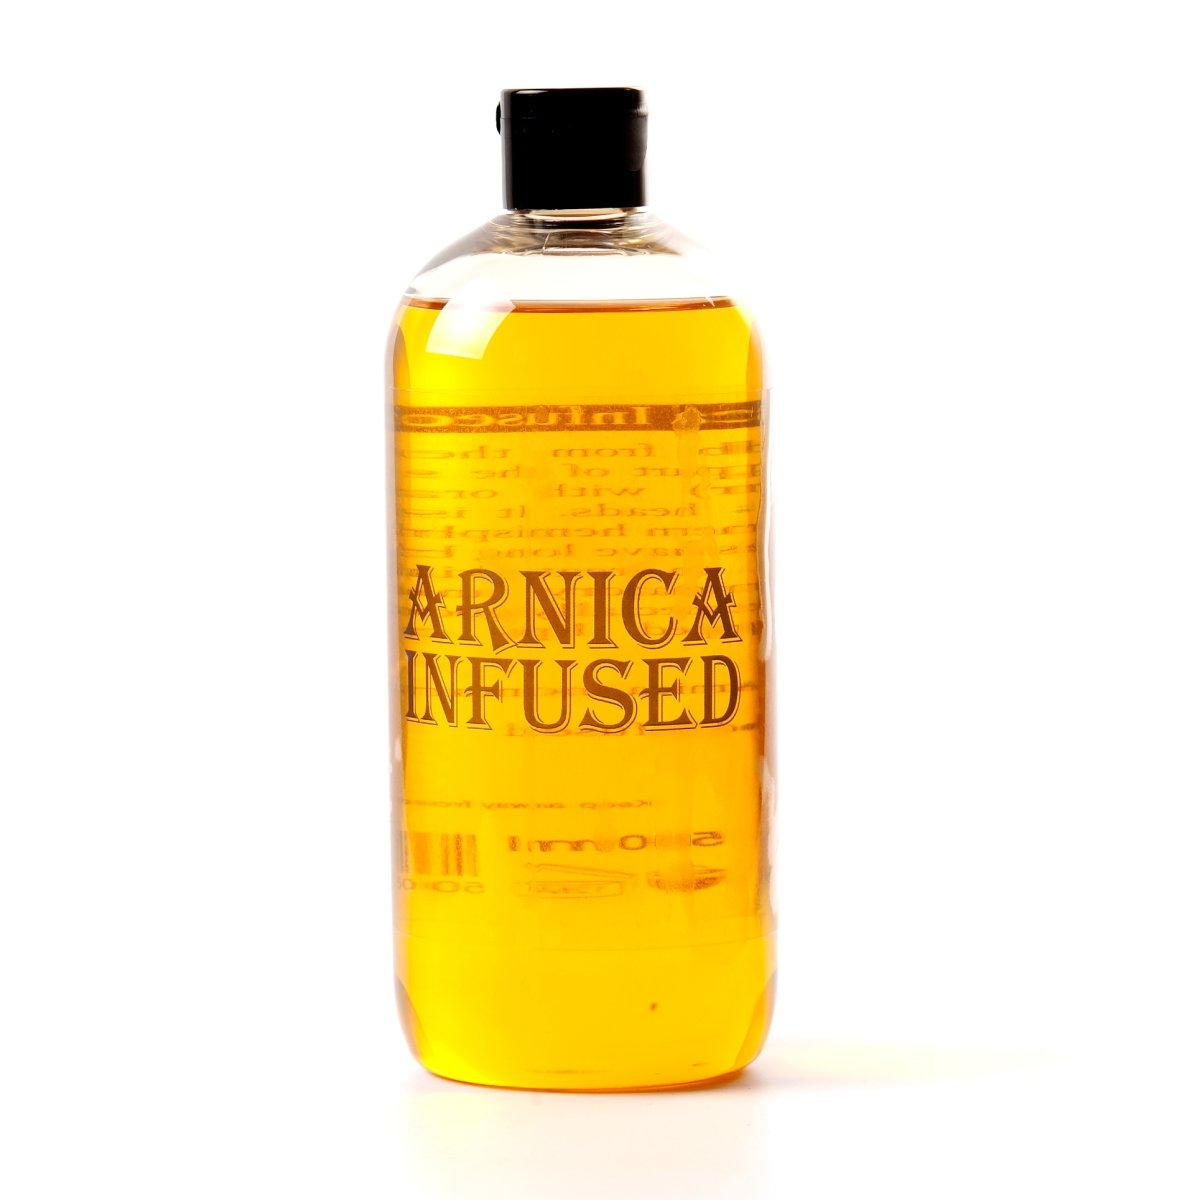 Arnica Infused - Herbal Extracts - Mystic Moments UK